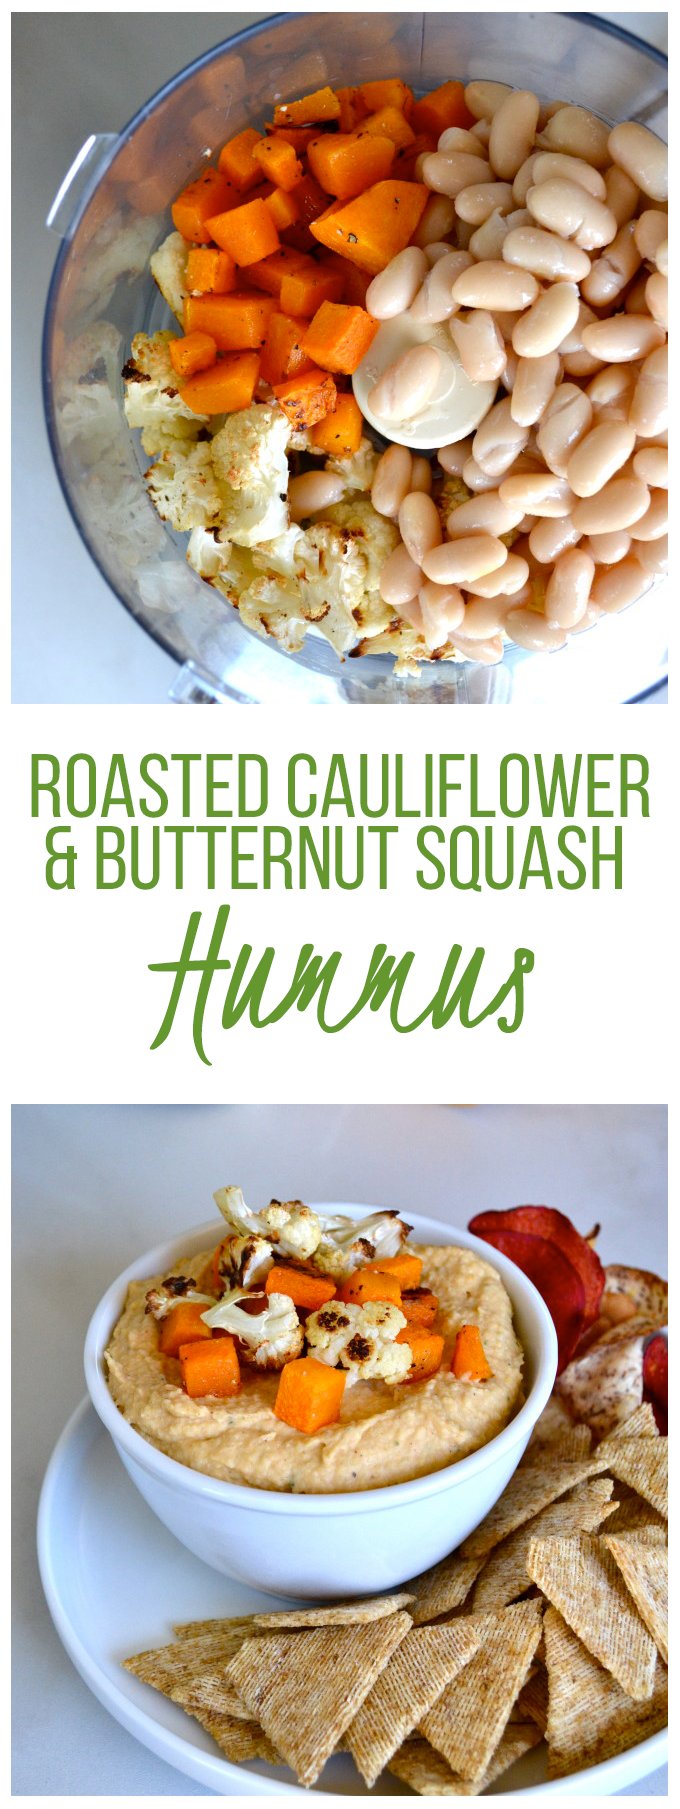 Roasted Cauliflower and Butternut Squash Hummus - a healthy and flavorful roasted dip!